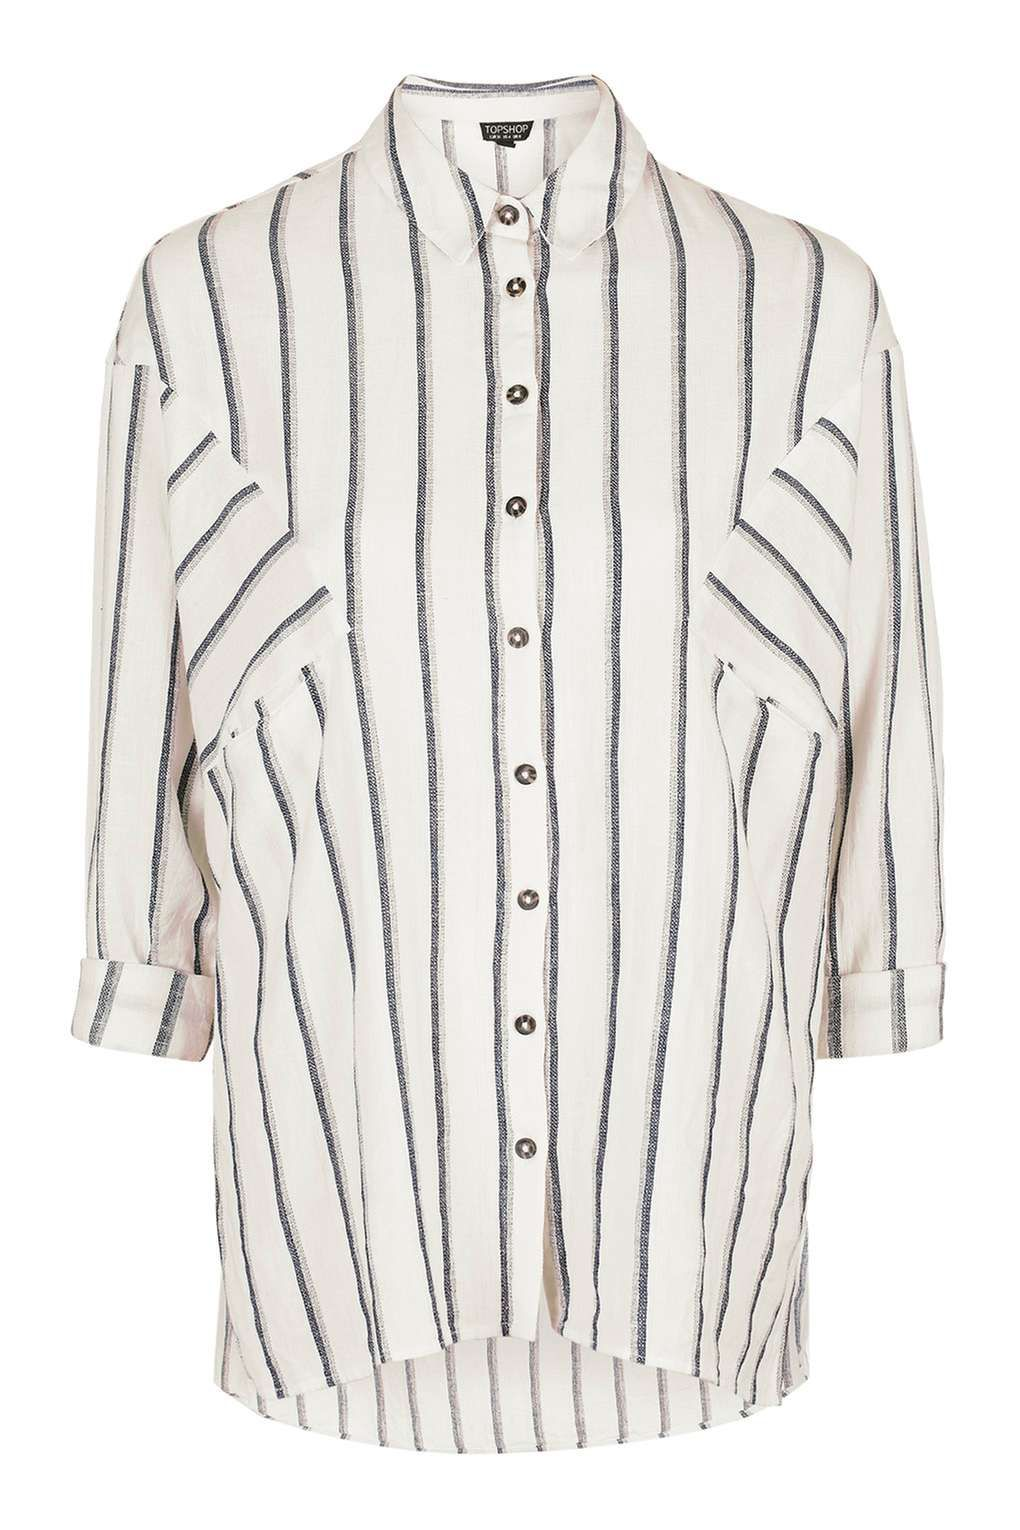 Oversized Shadow Stripe Linen Shirt Tops Clothing